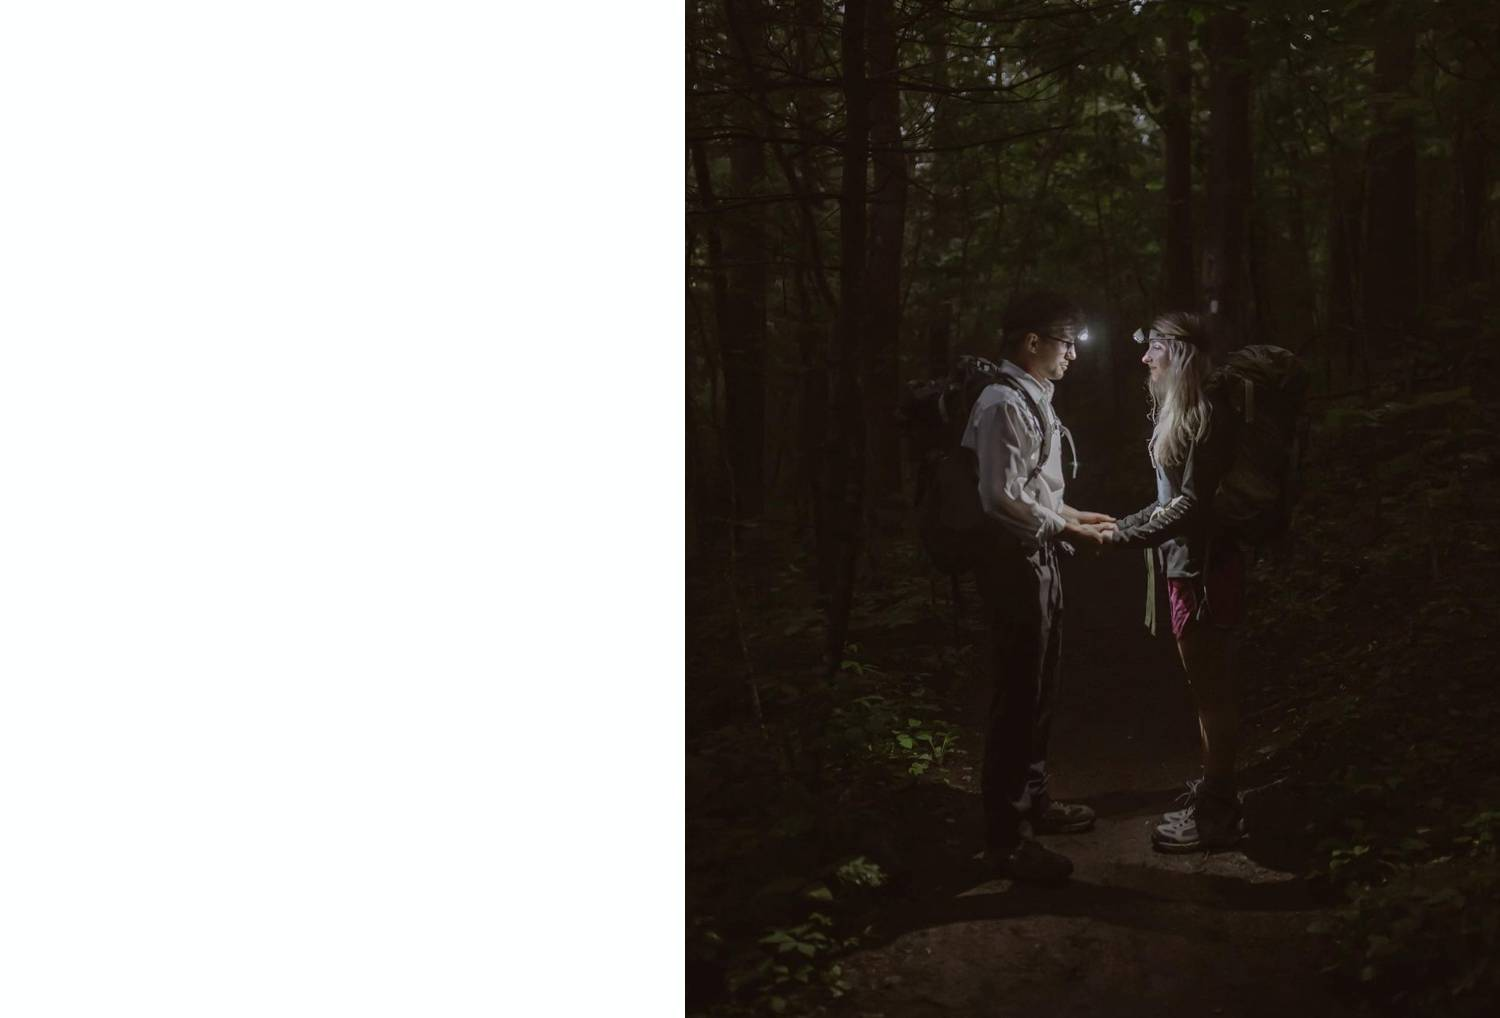 Photo: Kayla Wentzek's nighttime portrait of a couple shows them standing face-to-face in a dark forest with only their headlamps to illuminate the scene.